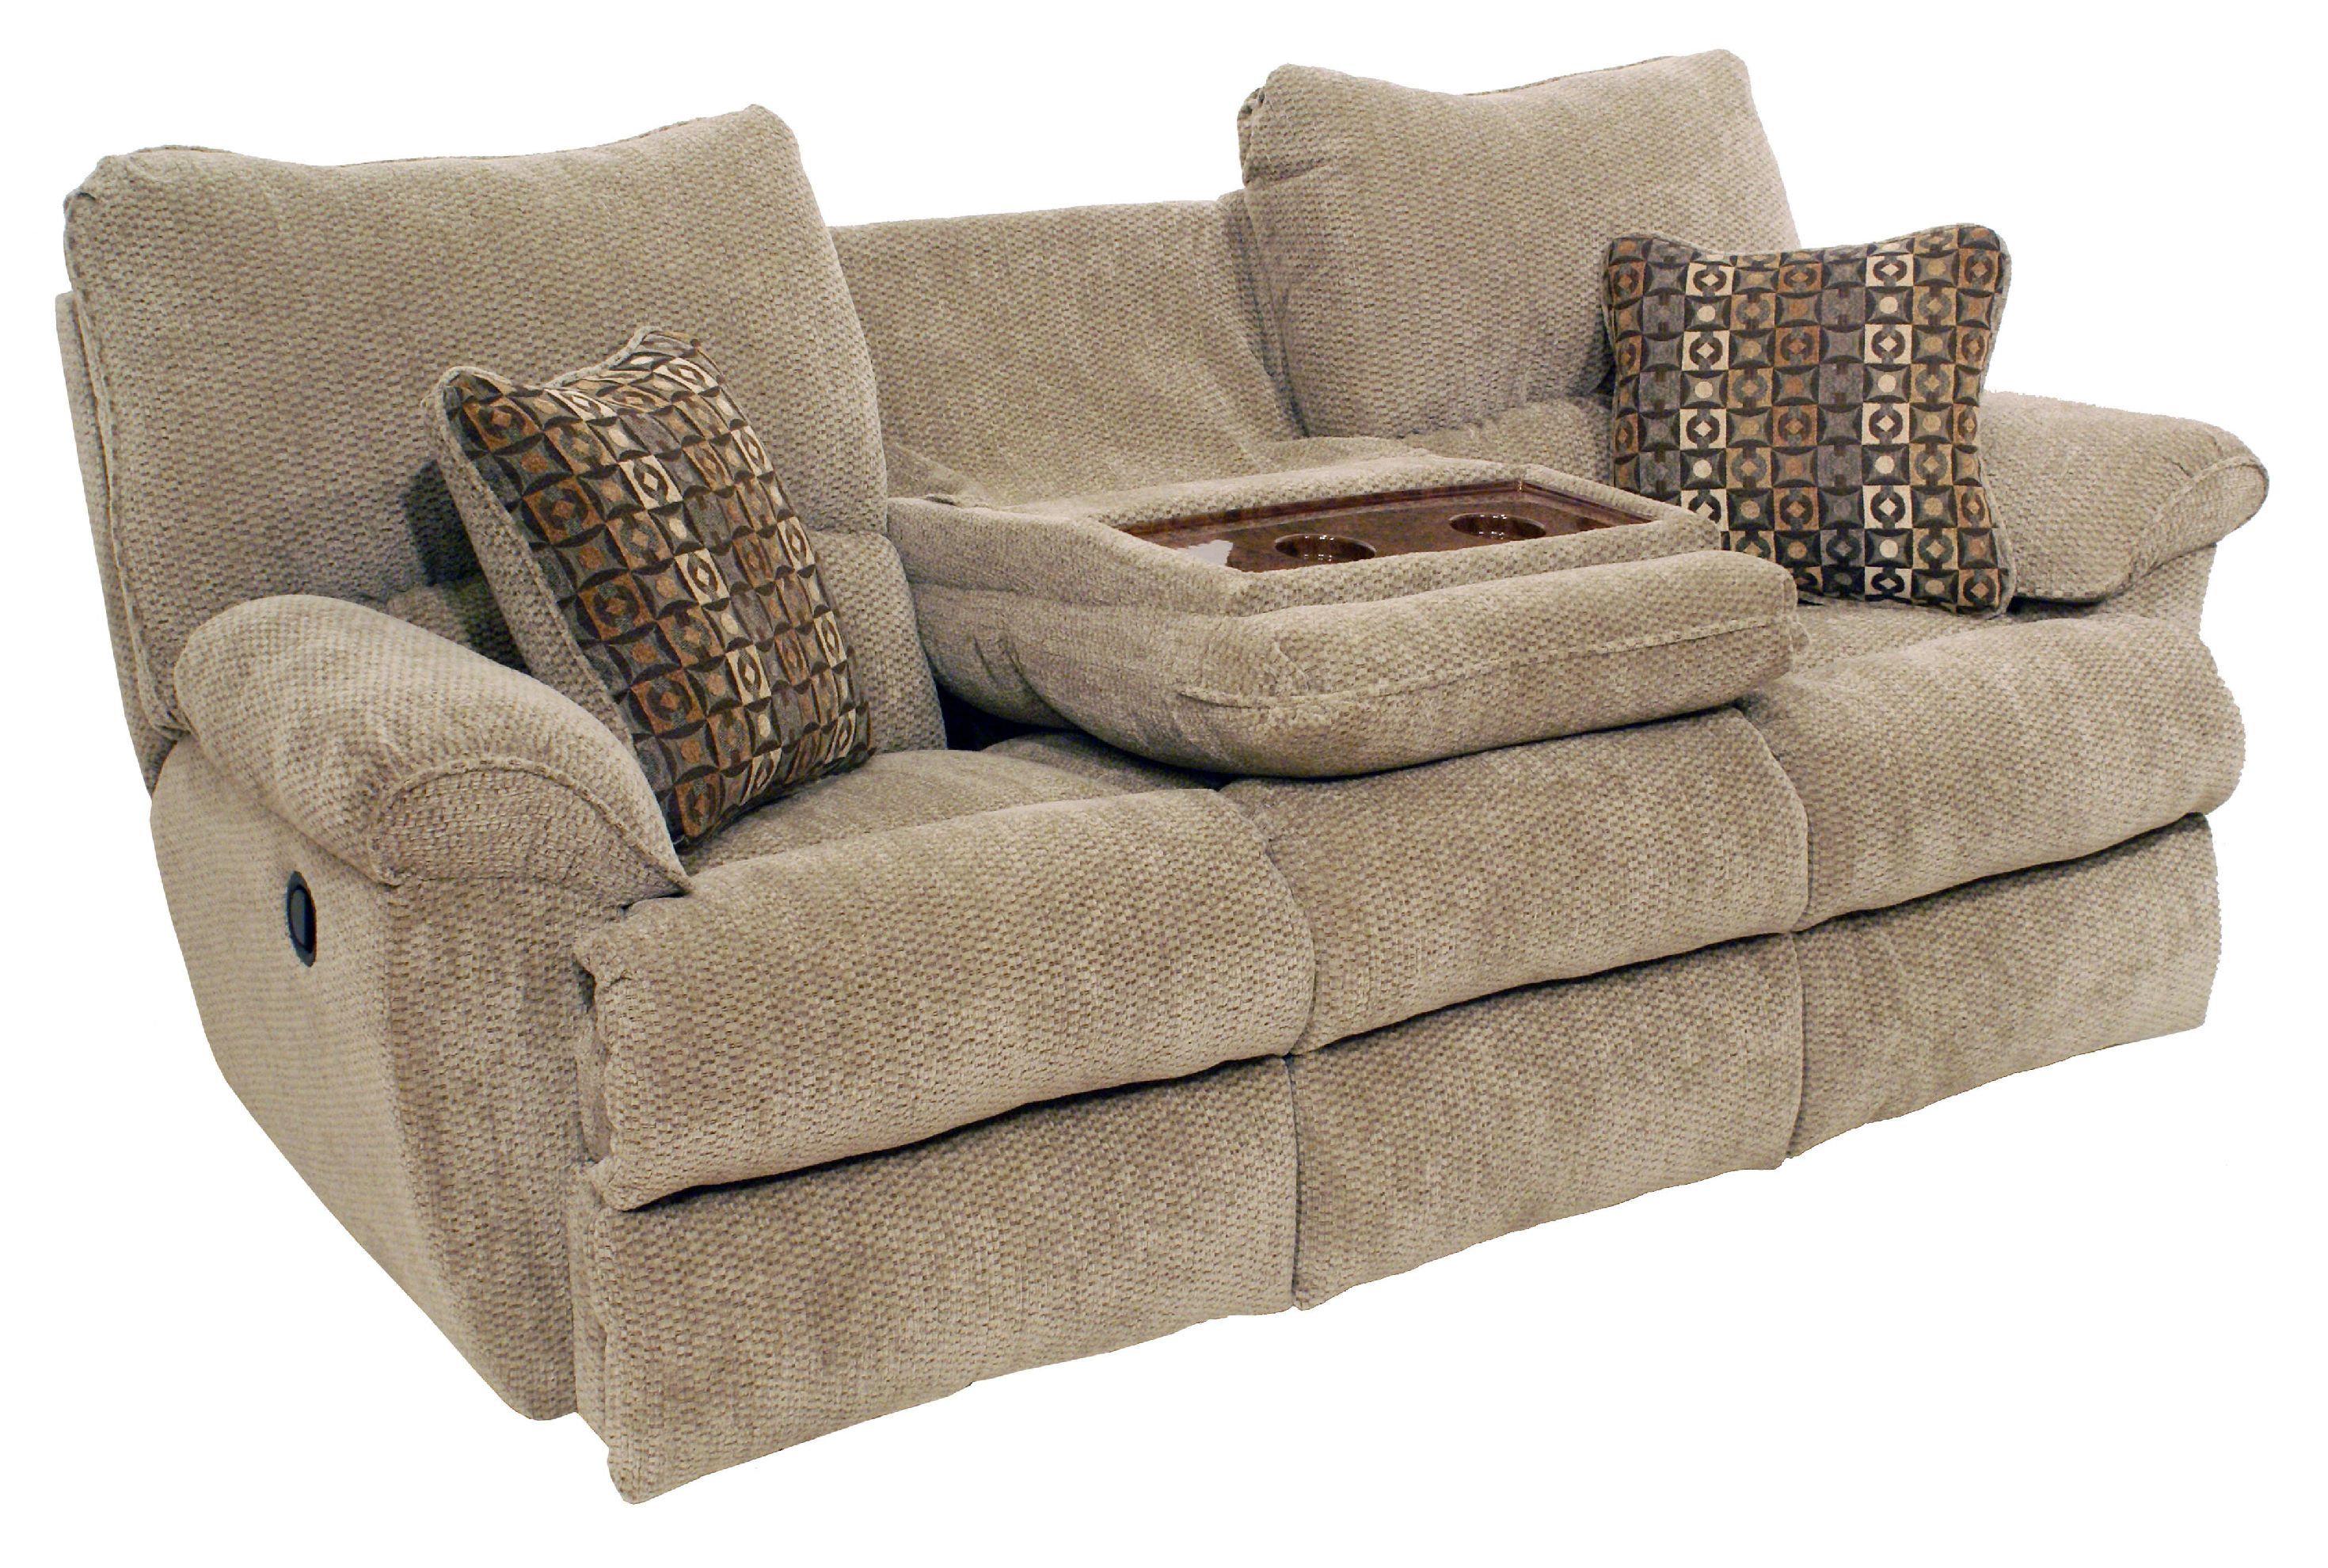 Gorgeous Twin Recliner Sofa 14 In Sofa Room Ideas with Twin Recliner Sofa